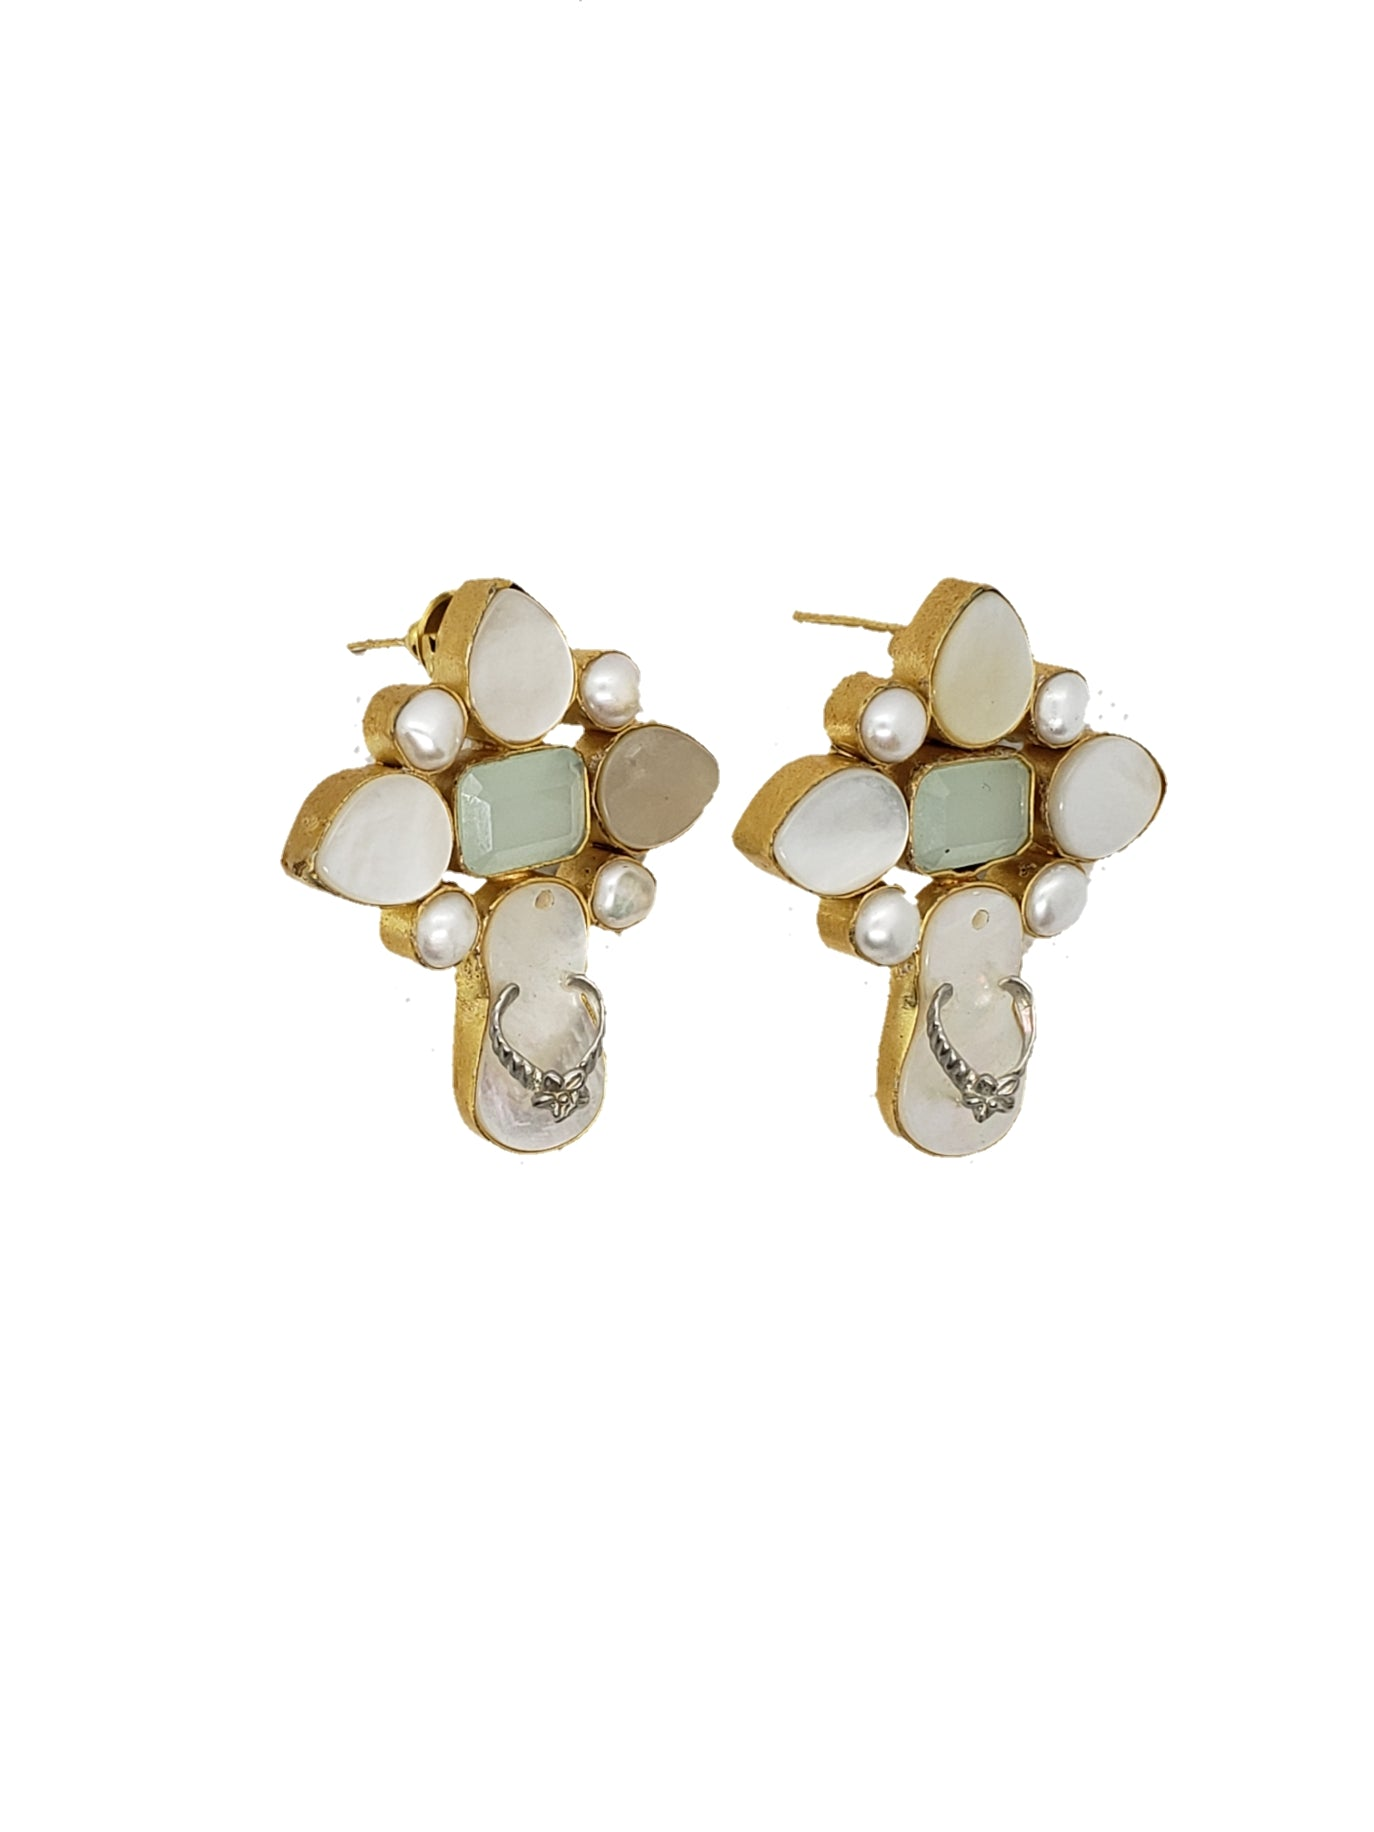 Chalcedony and Slipper Stone Stud Earrings - The Bauble Shop